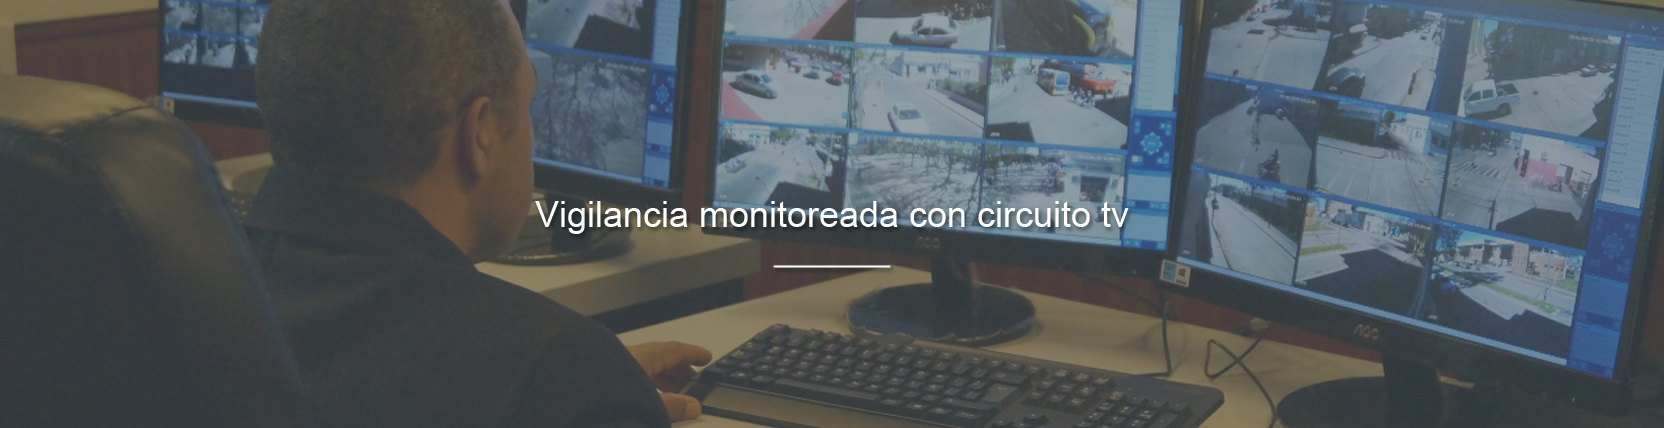 seguridad-circuito-tv